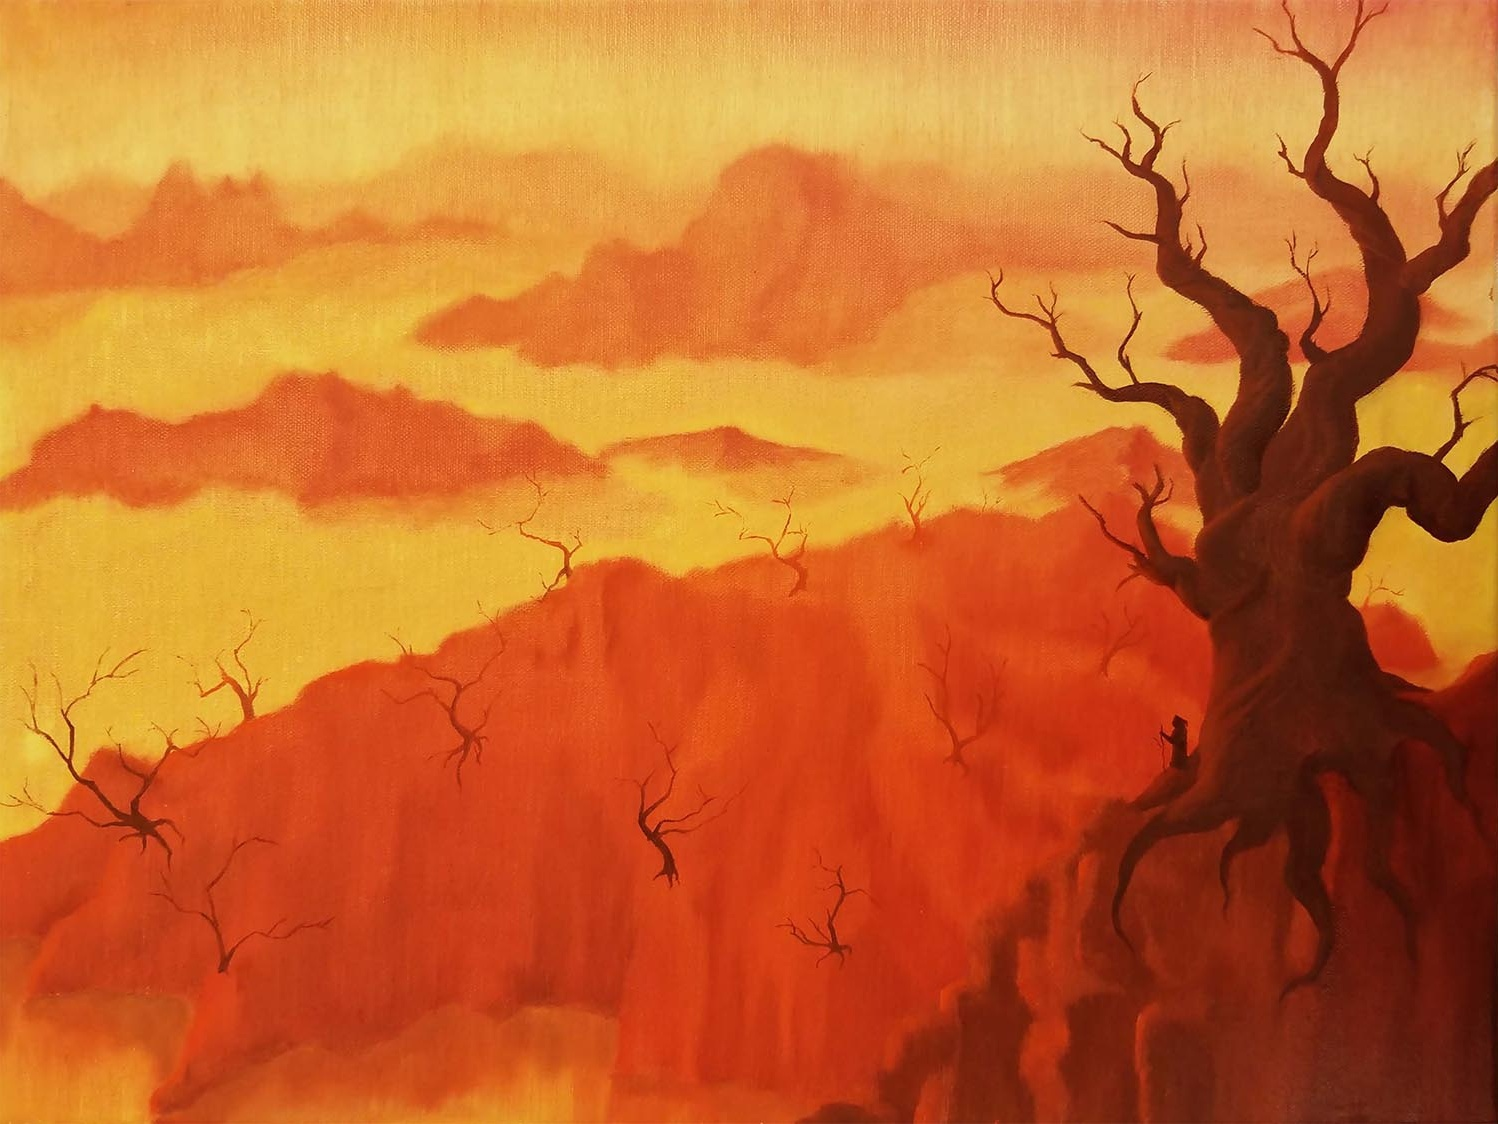 The Arrival book art warm colors tree desert painting design illustration